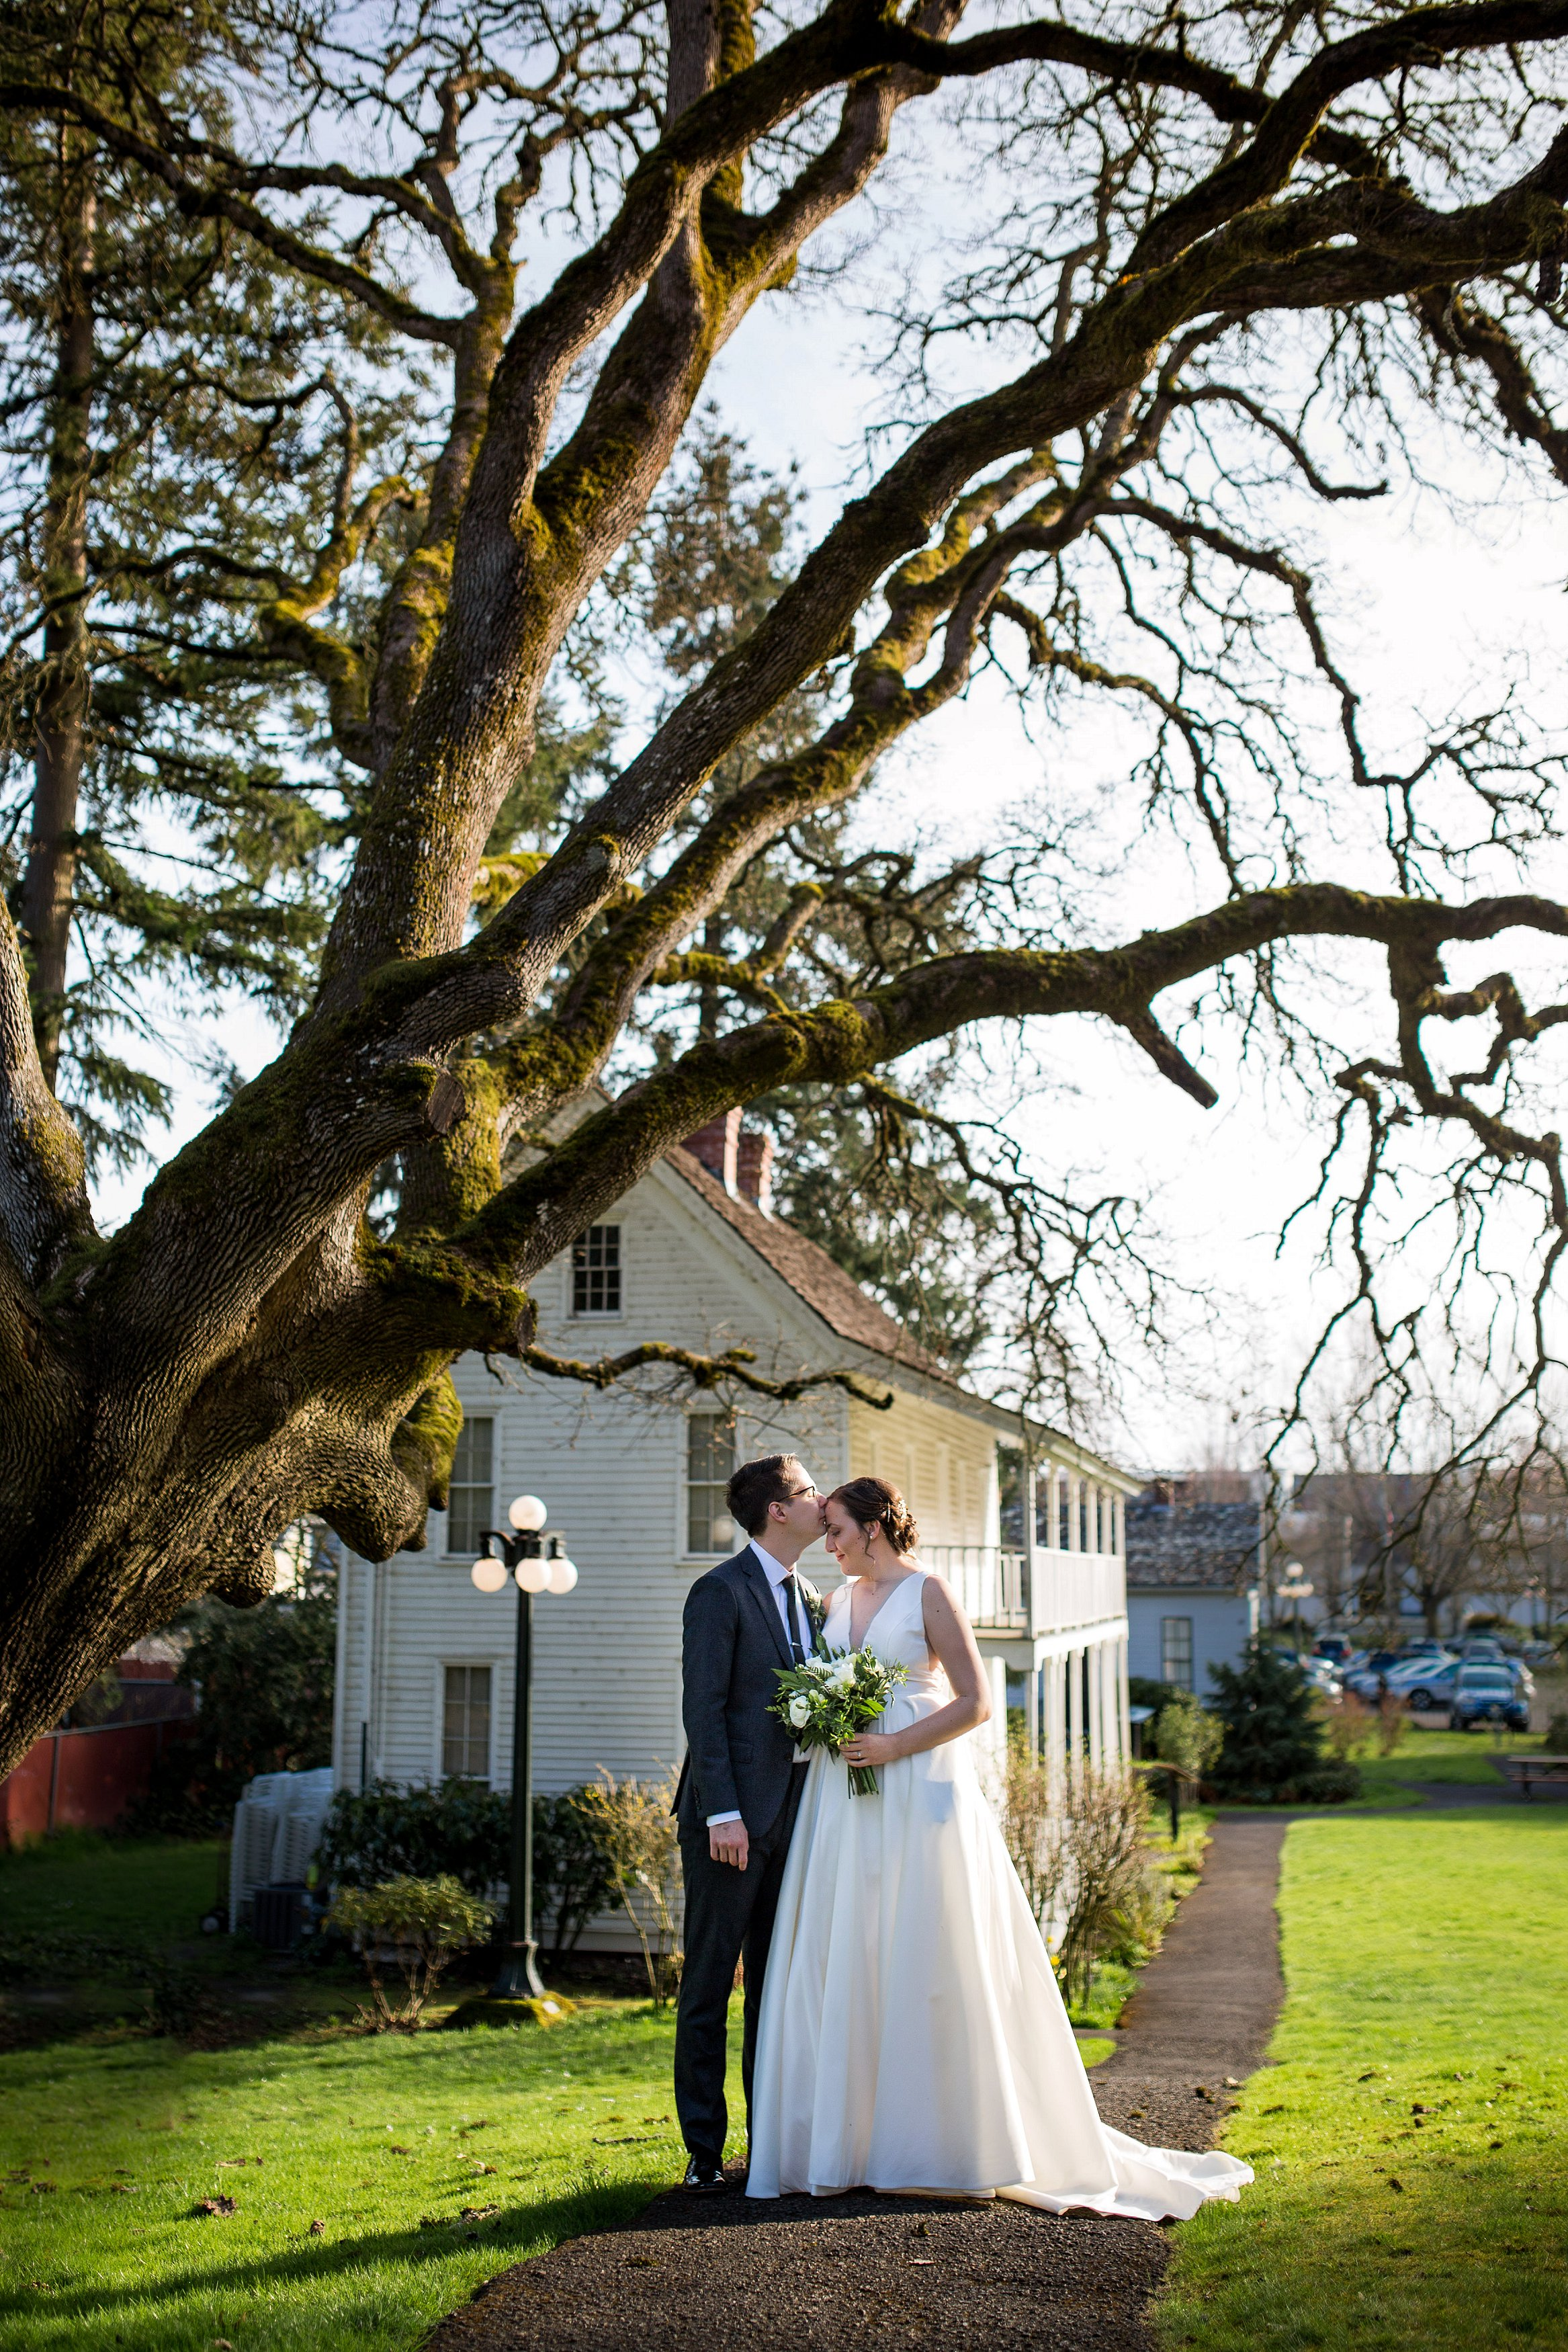 Best Wedding Photographer in Salem, Oregon